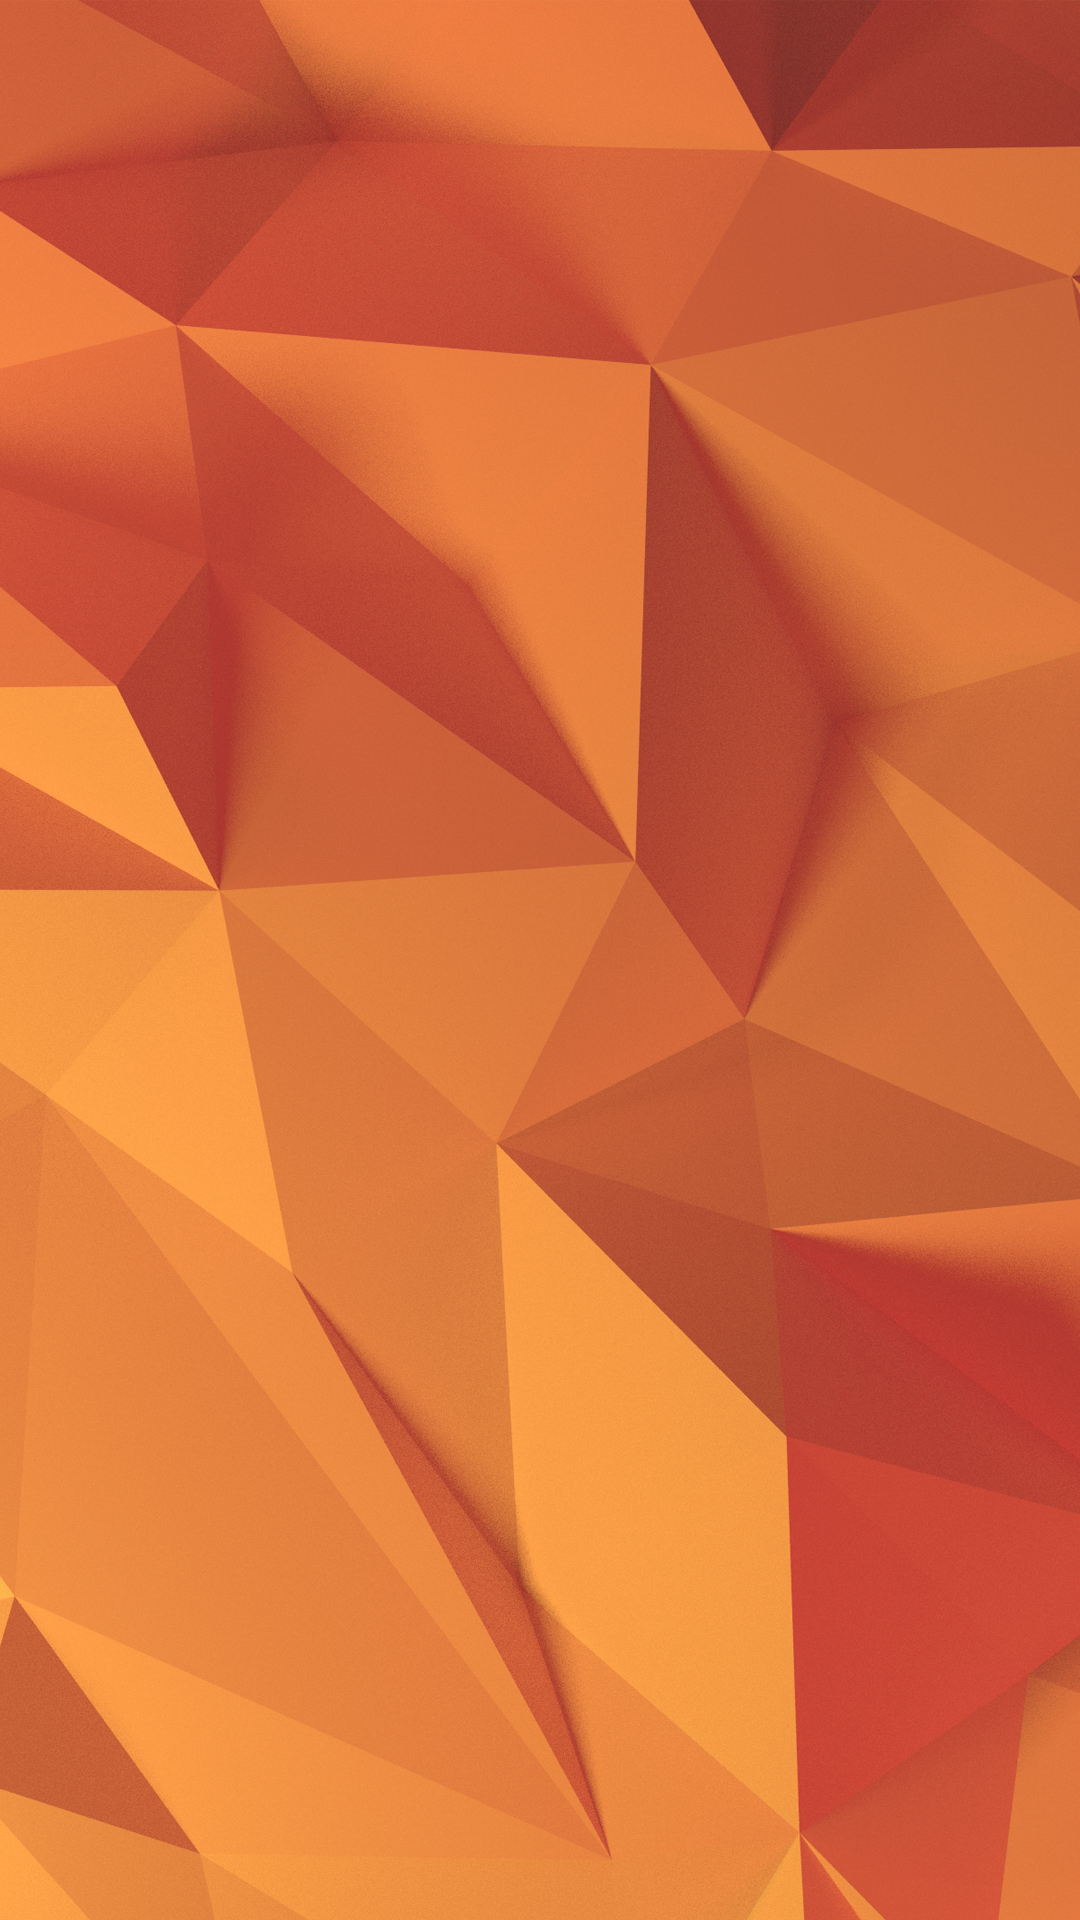 Blender 3d Wallpaper Low Poly By Tim Smits Dsktps